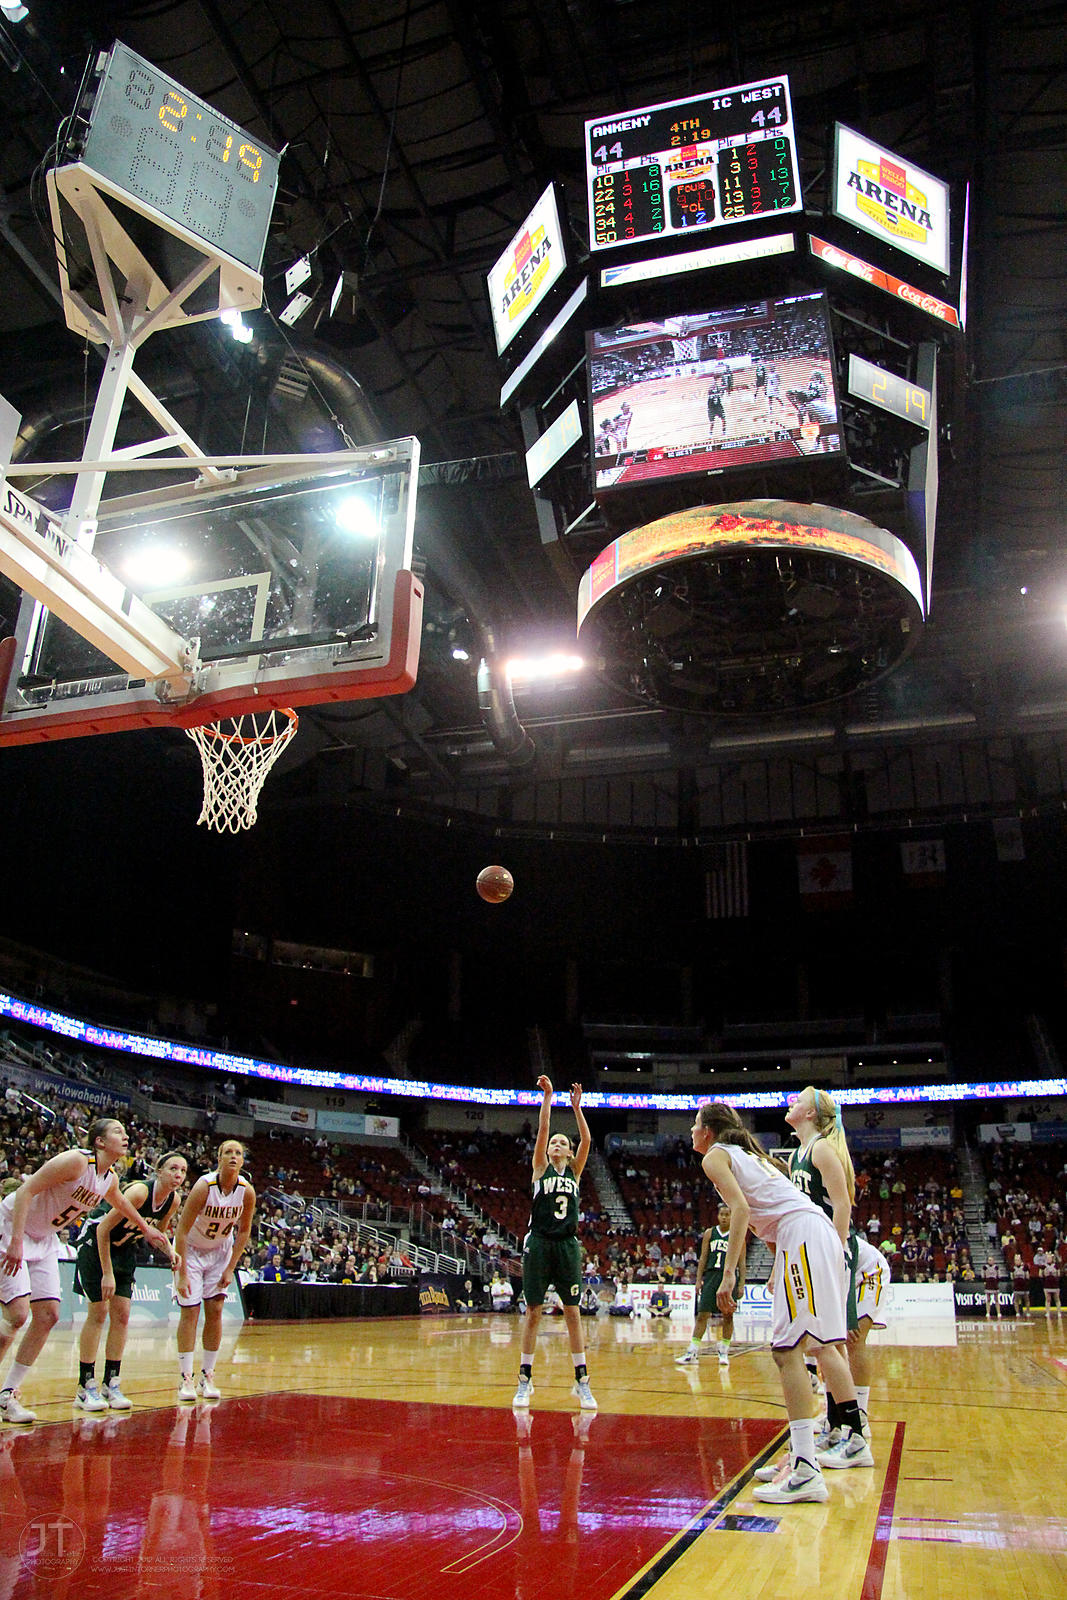 Iowa City West vs Ankeny Girls Basketball 4A Basketball Championship Game 3/3/12